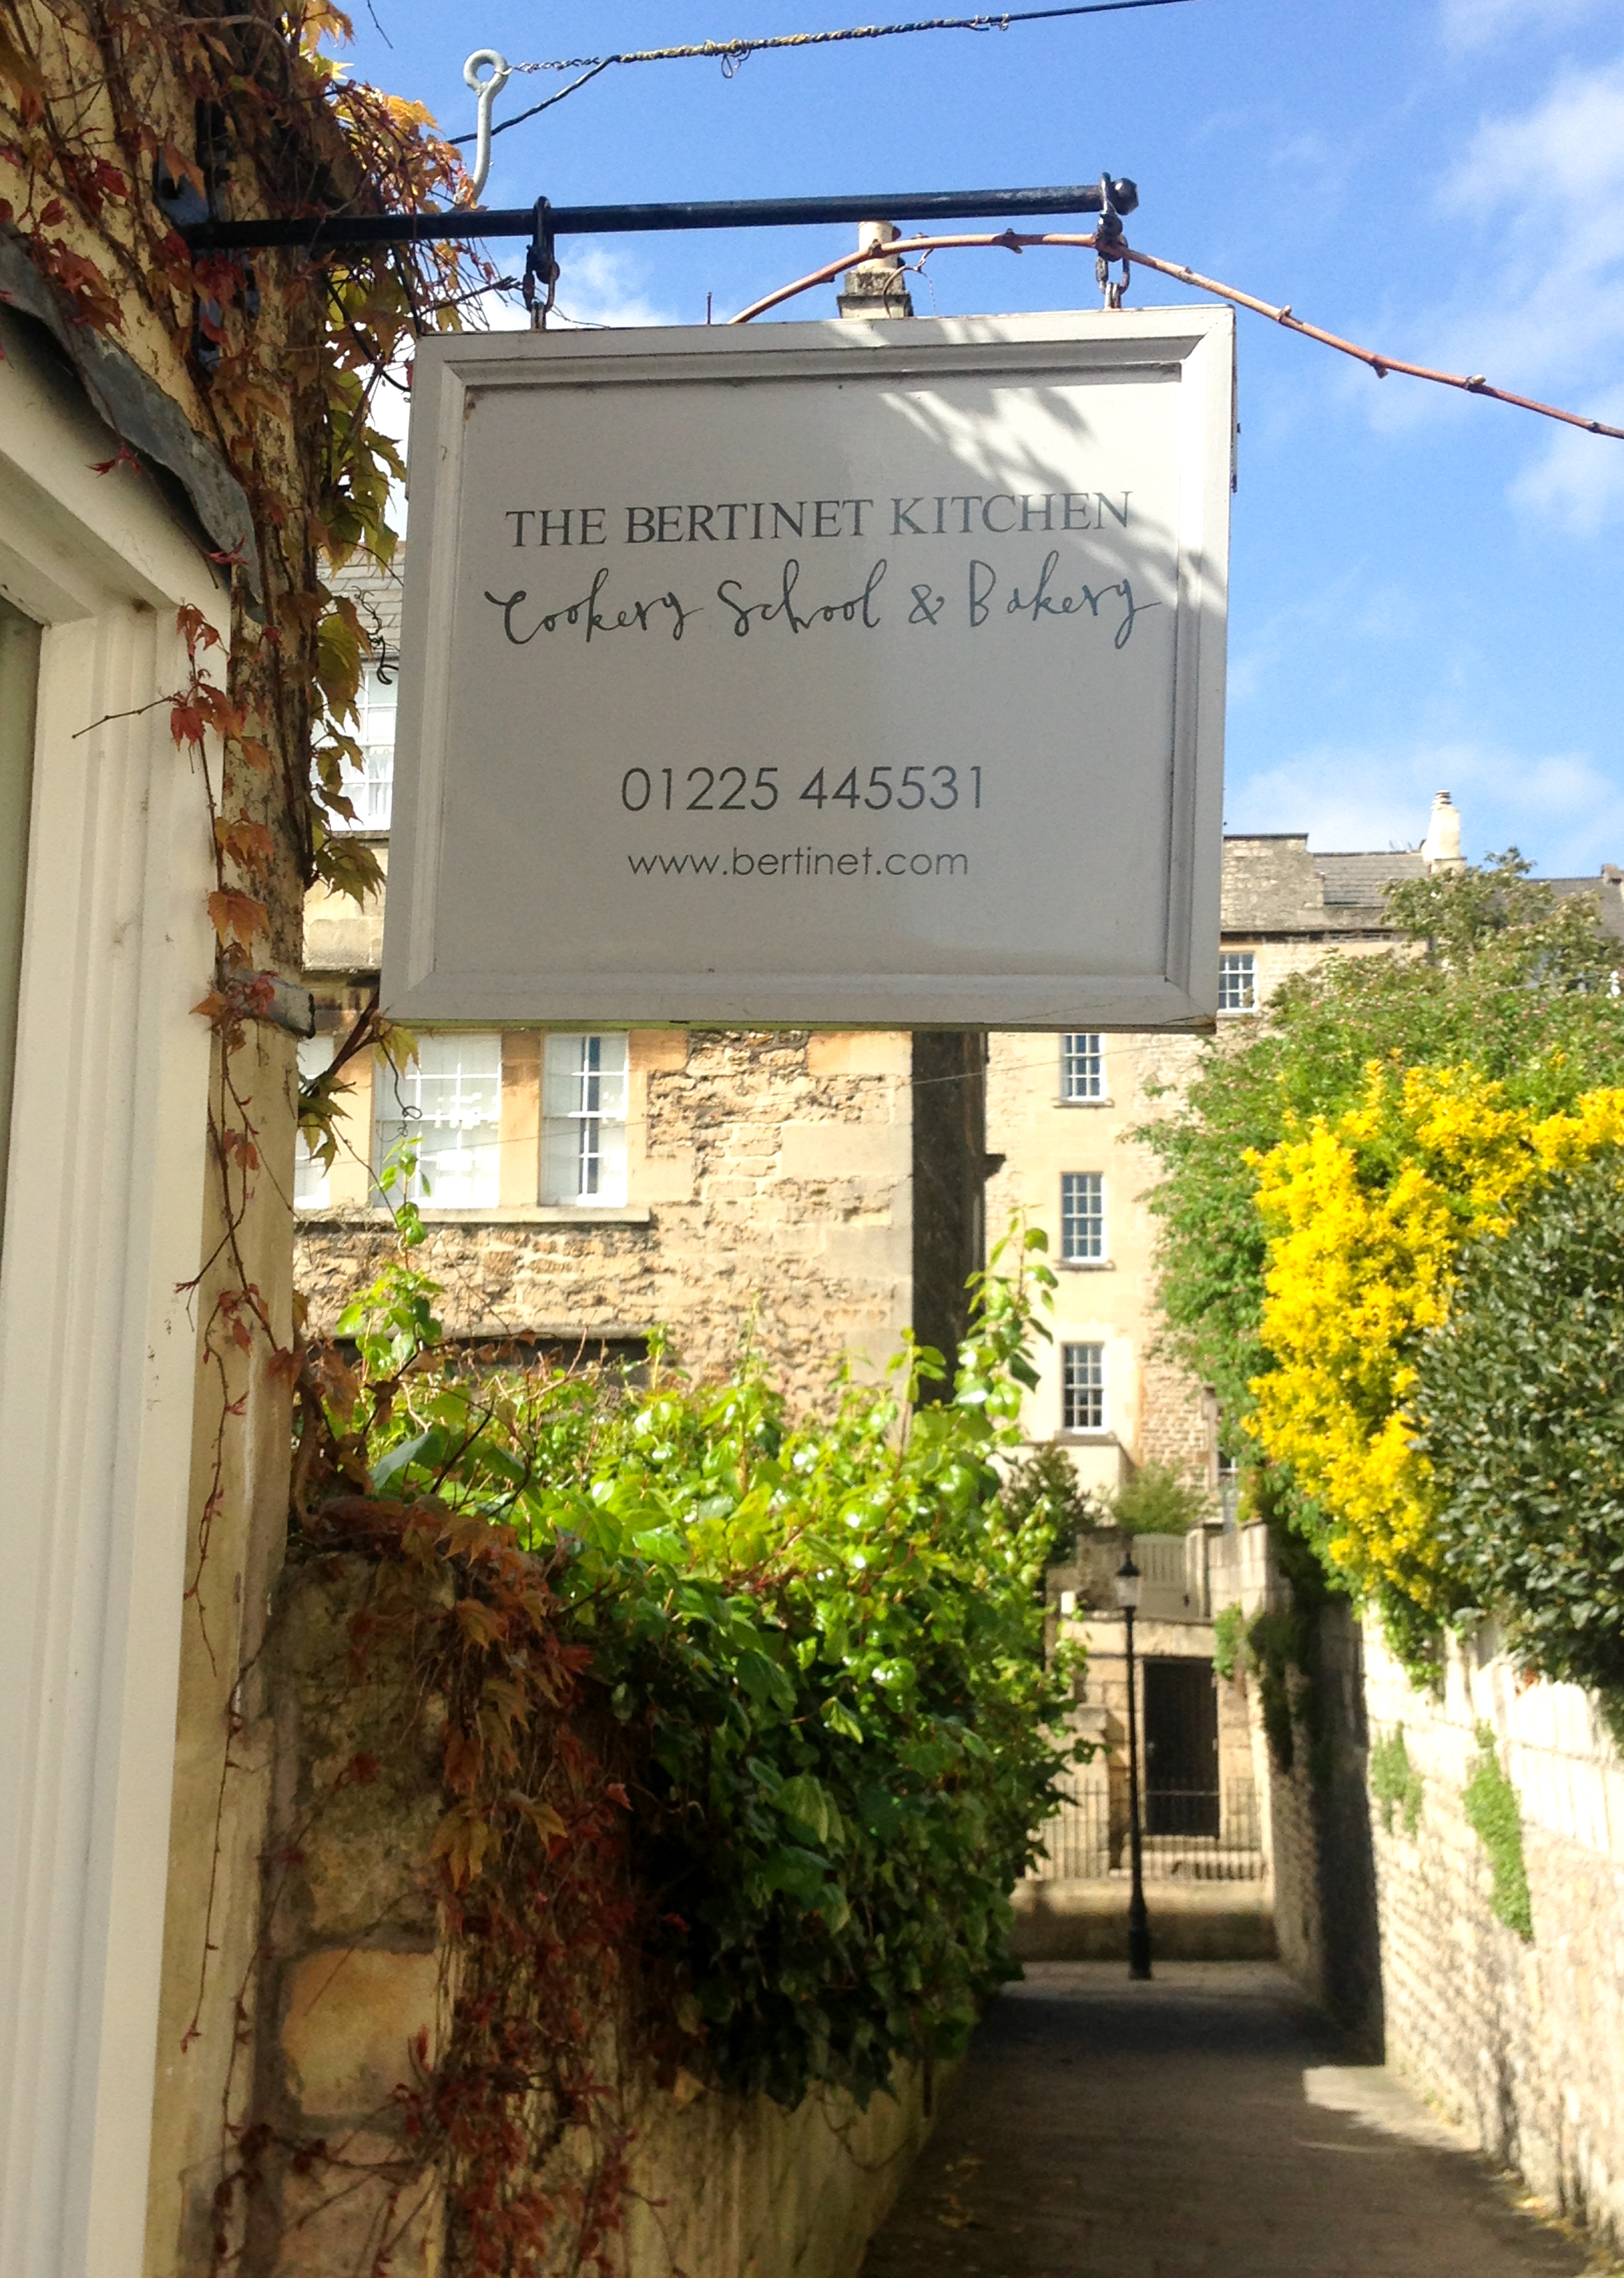 PERMISSION GRANTED TO TAKE IMAGE AT THE BERTINET KITCHEN & BAKERY - 12 ST ANDREW'S TERRACE